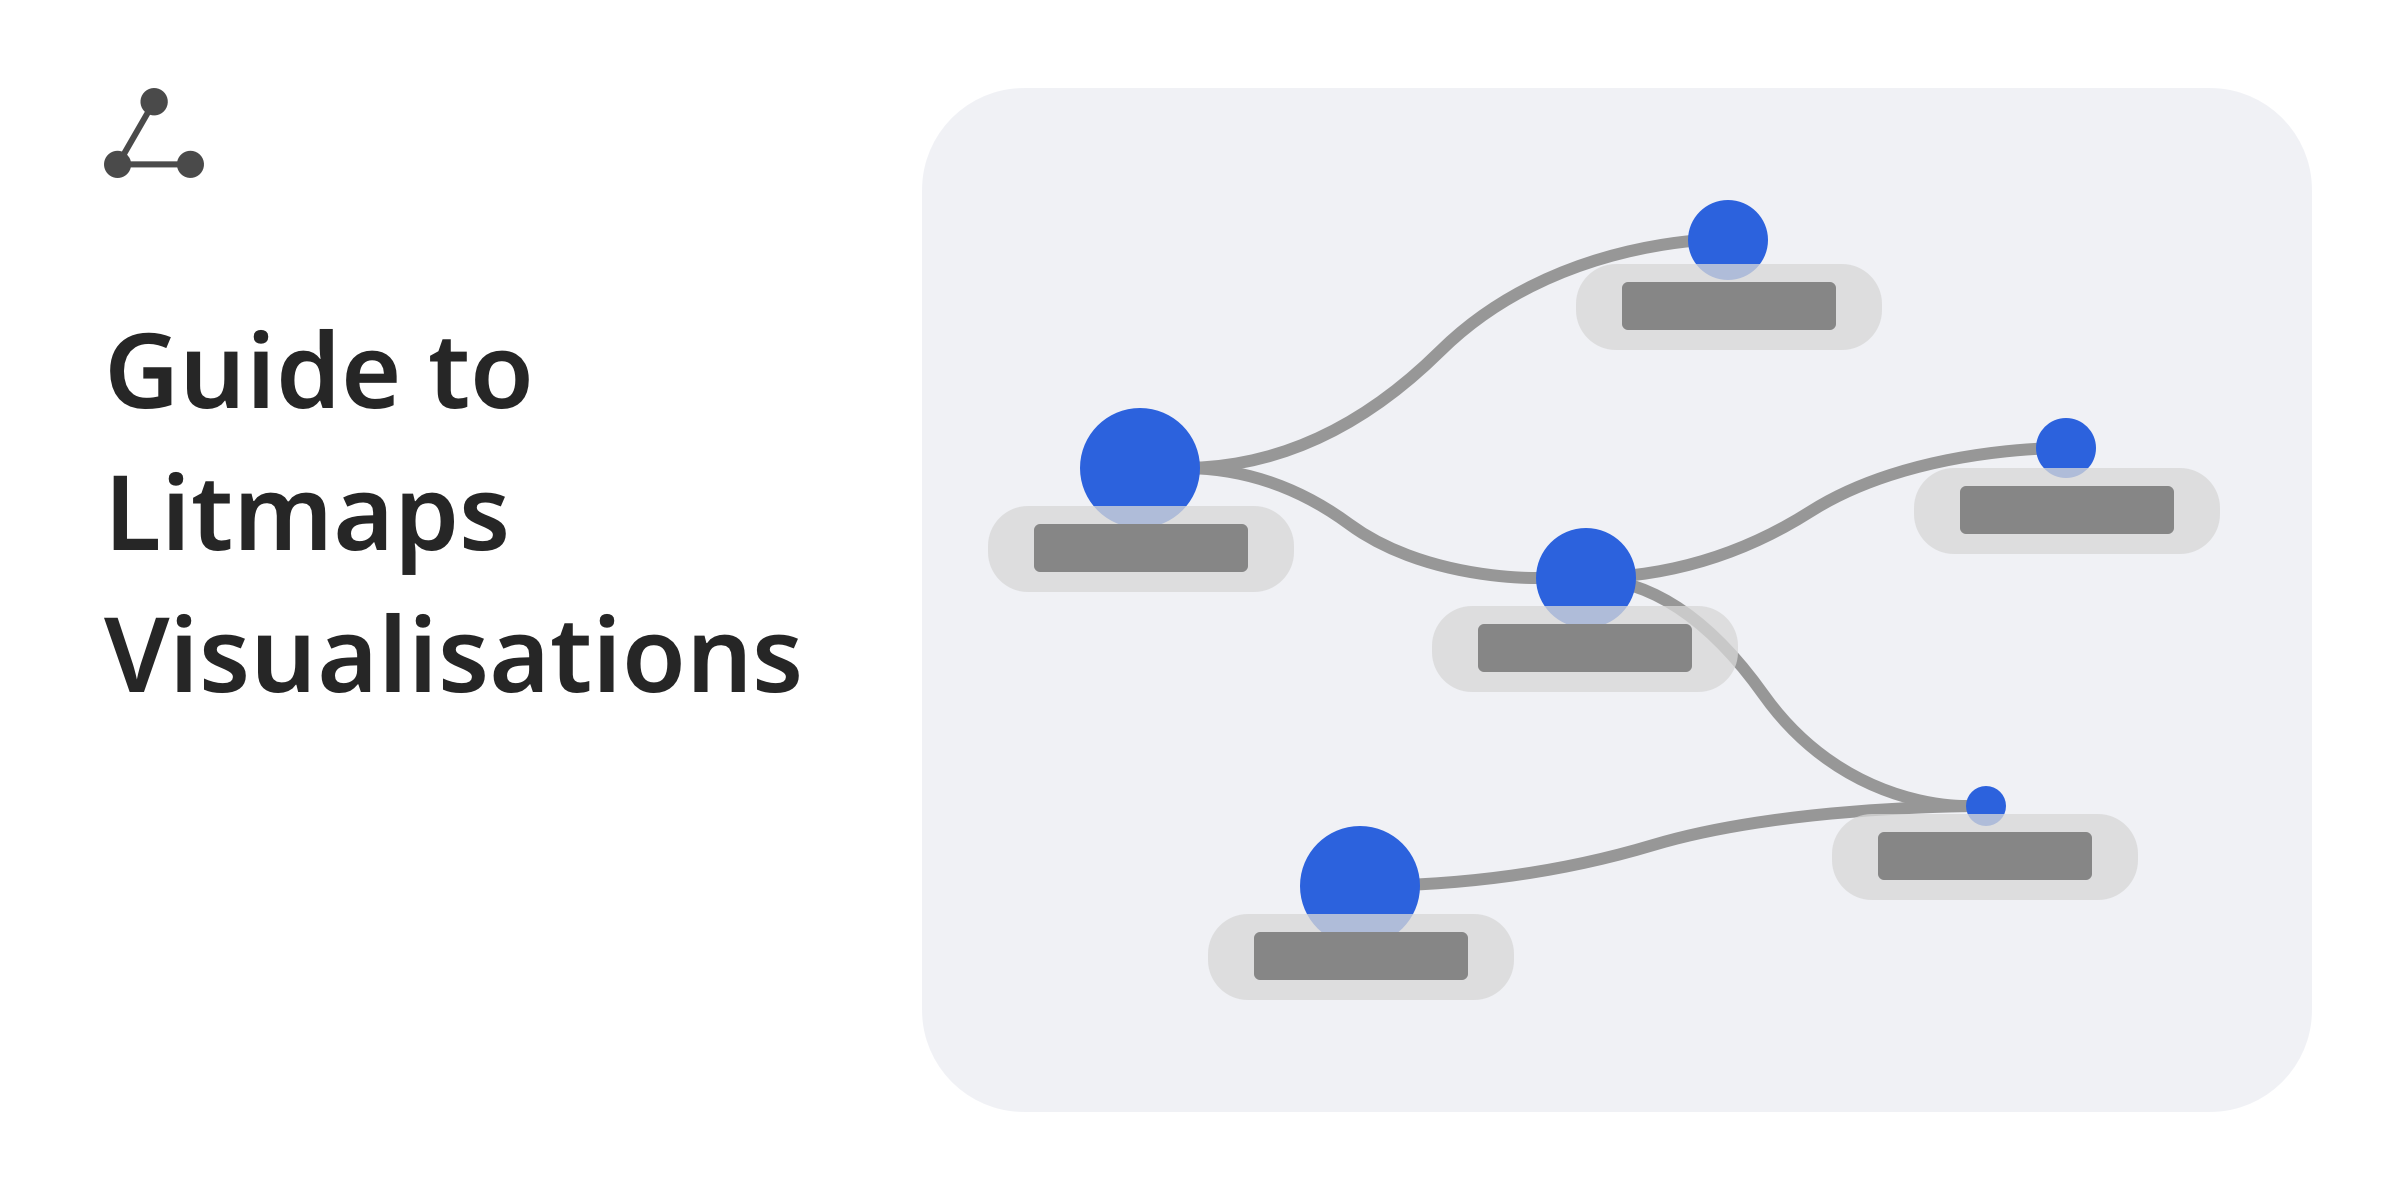 Guide to Litmaps Visualisations title with a stylised graph next to it.